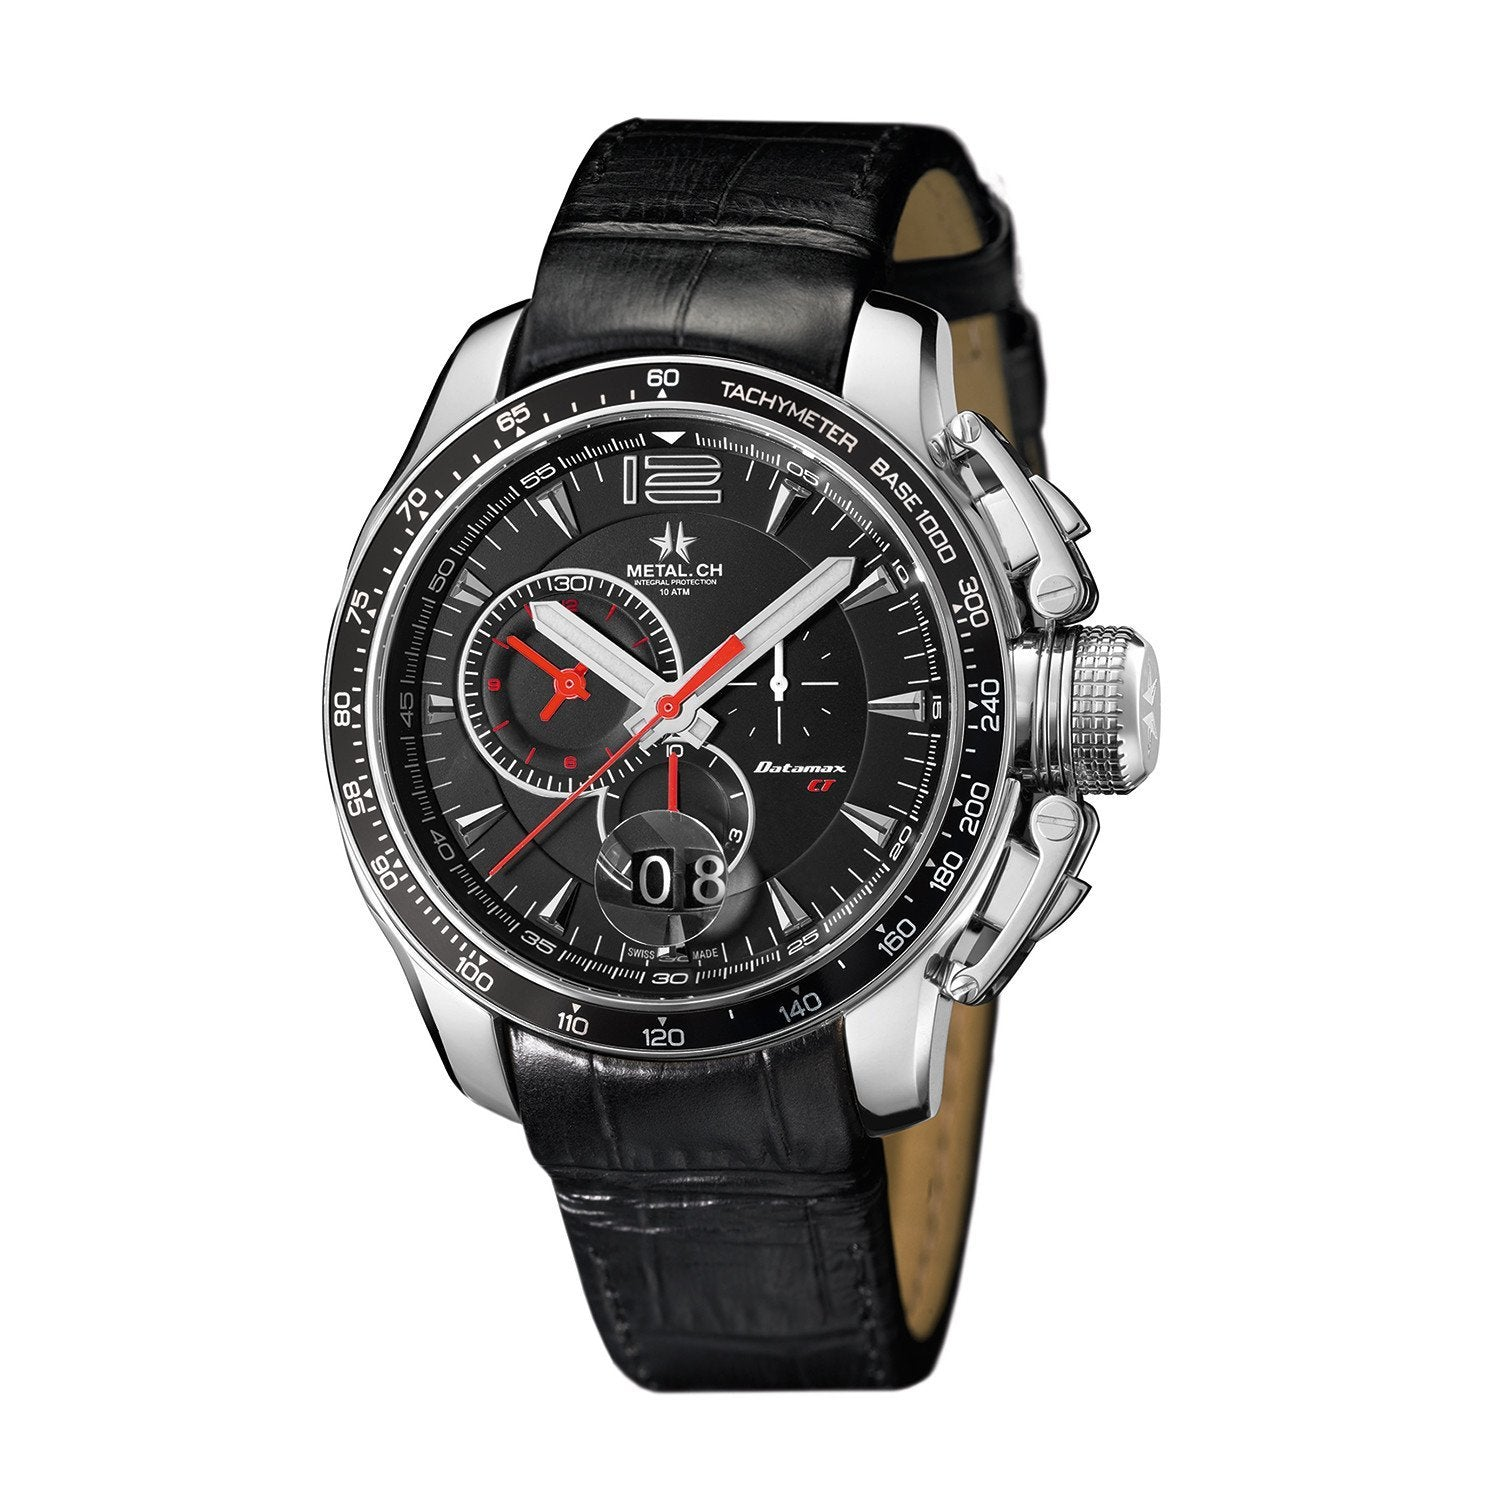 Metal.CH Datamax CT Chronograph Date Black - Watches & Crystals